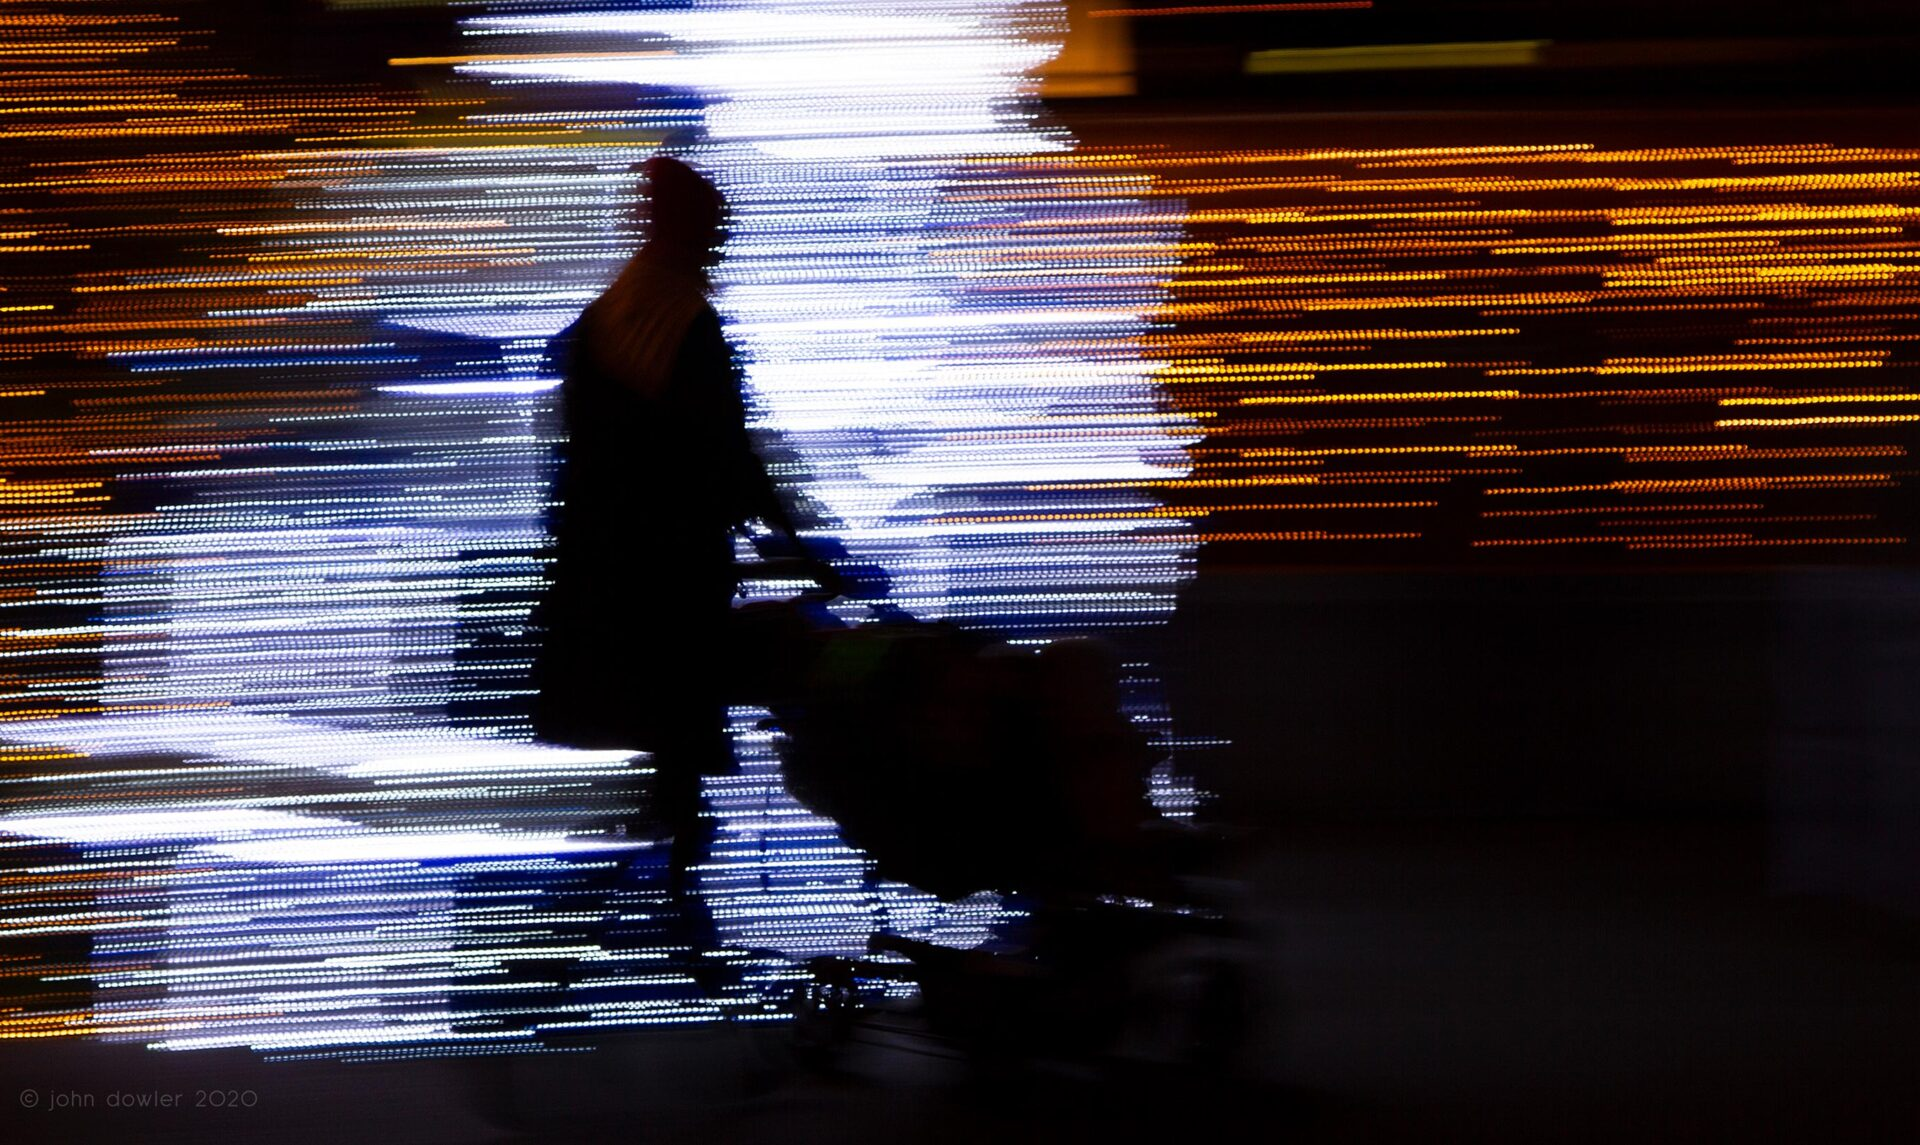 a black silhooet of a mother pushing a stroller against colourful streaks of light composed of discrete square dots; a mosaic of light